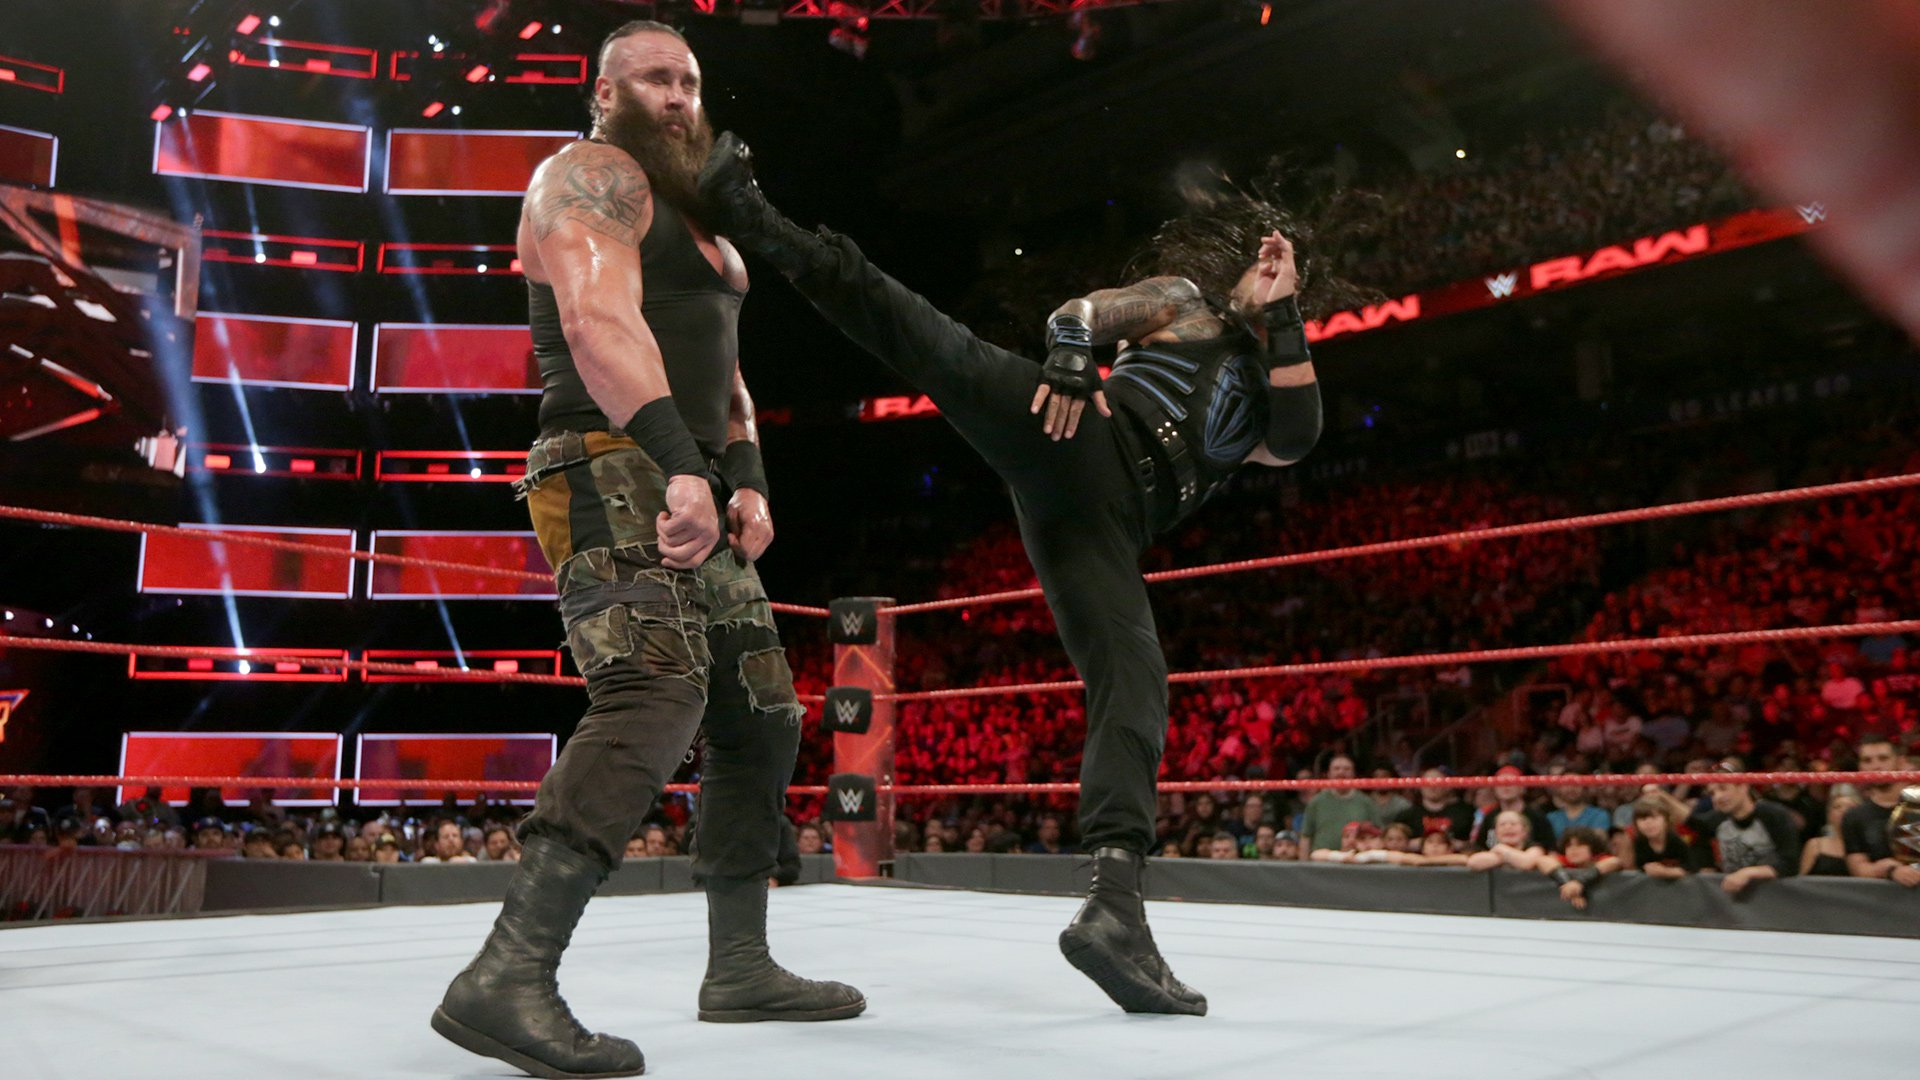 Reigns delivers a picture-perfect kick right into Strowman's jaw...